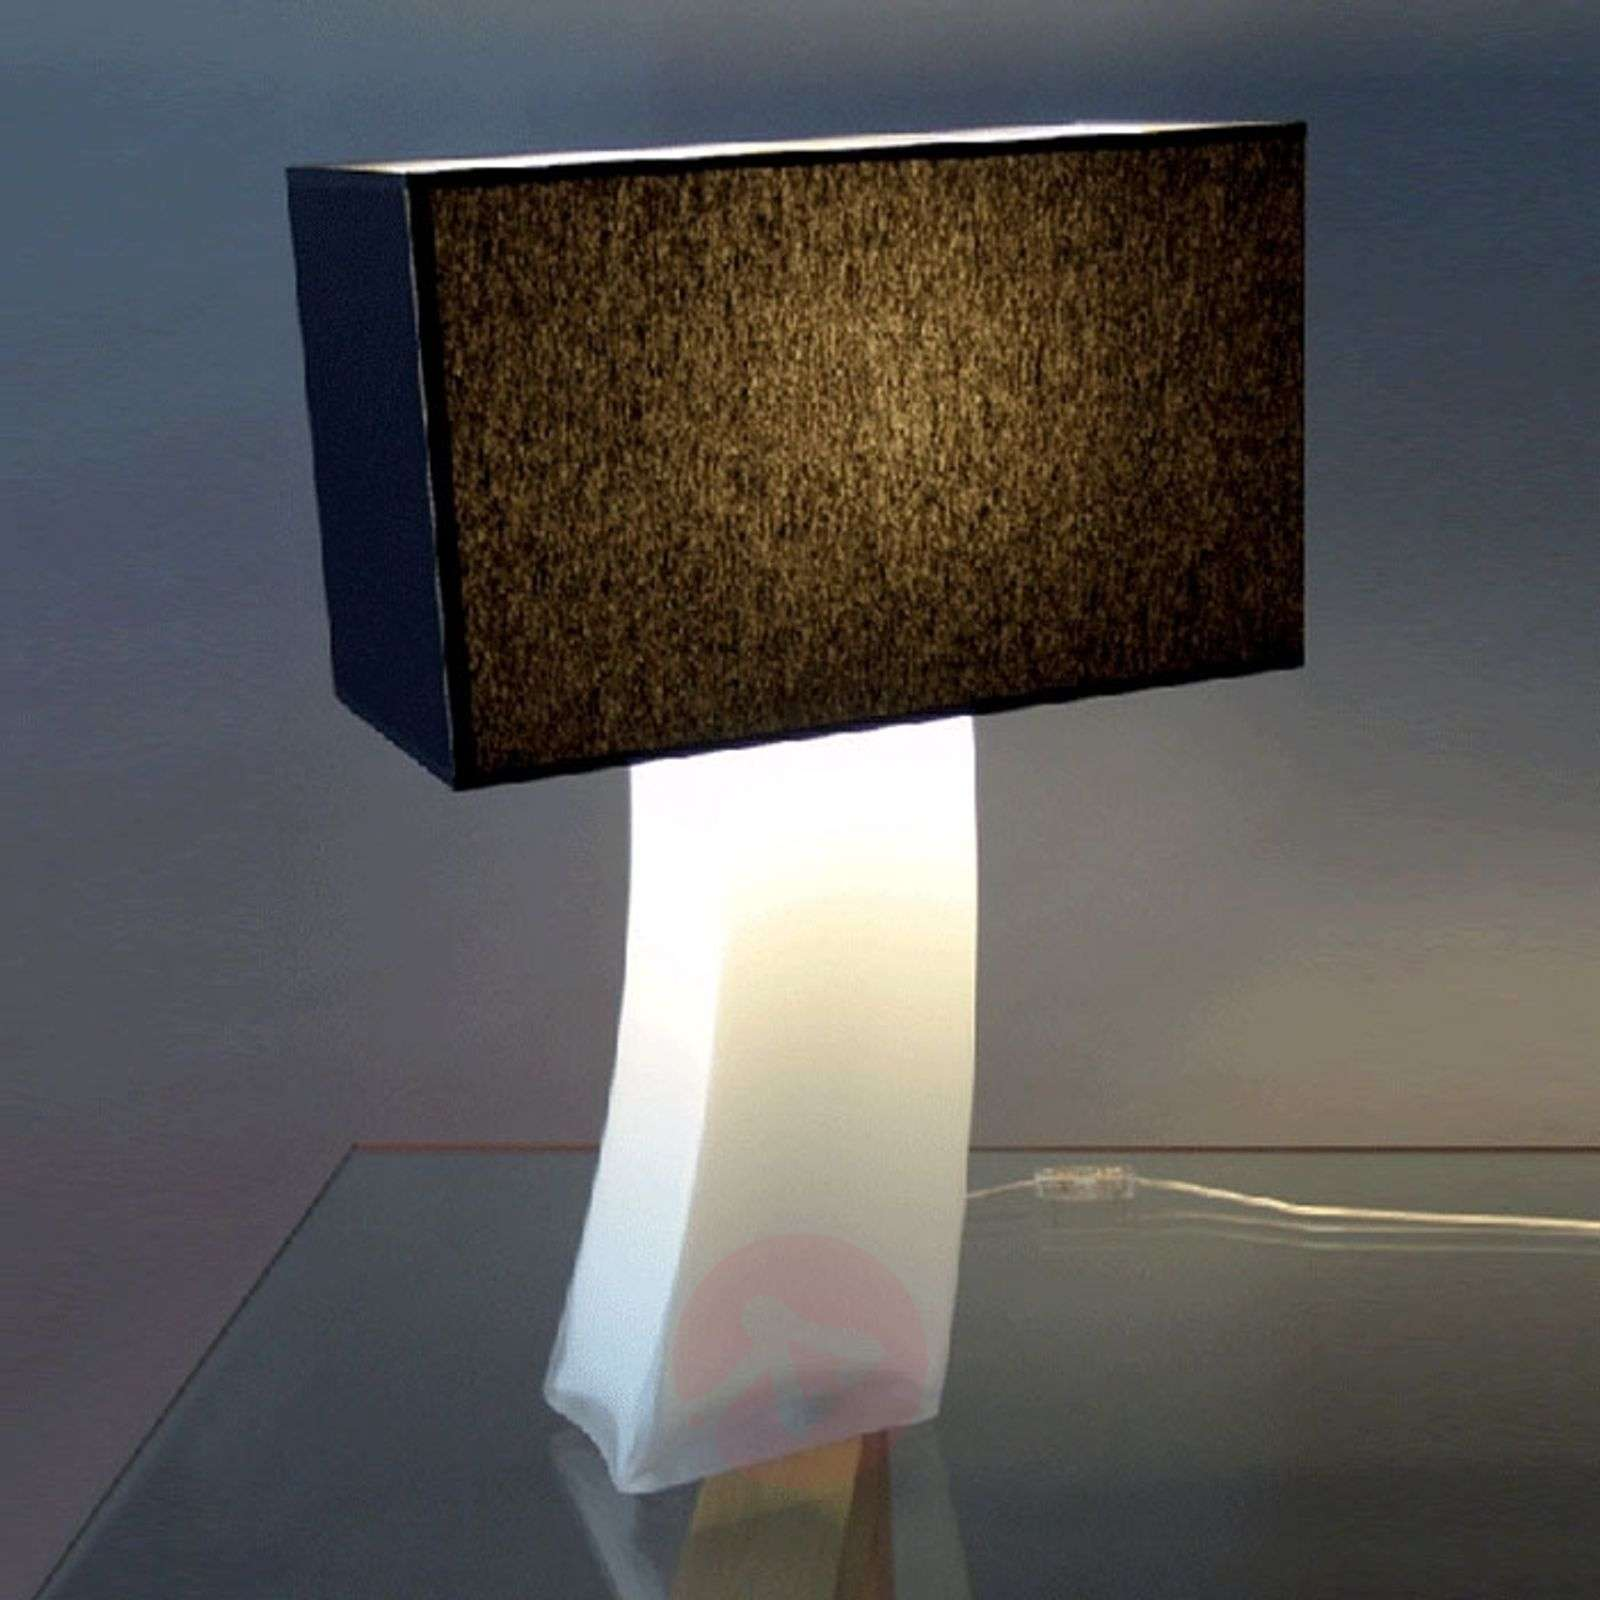 Black table lamp nadine opal lights black table lamp nadine opal 8025031 01 geotapseo Image collections